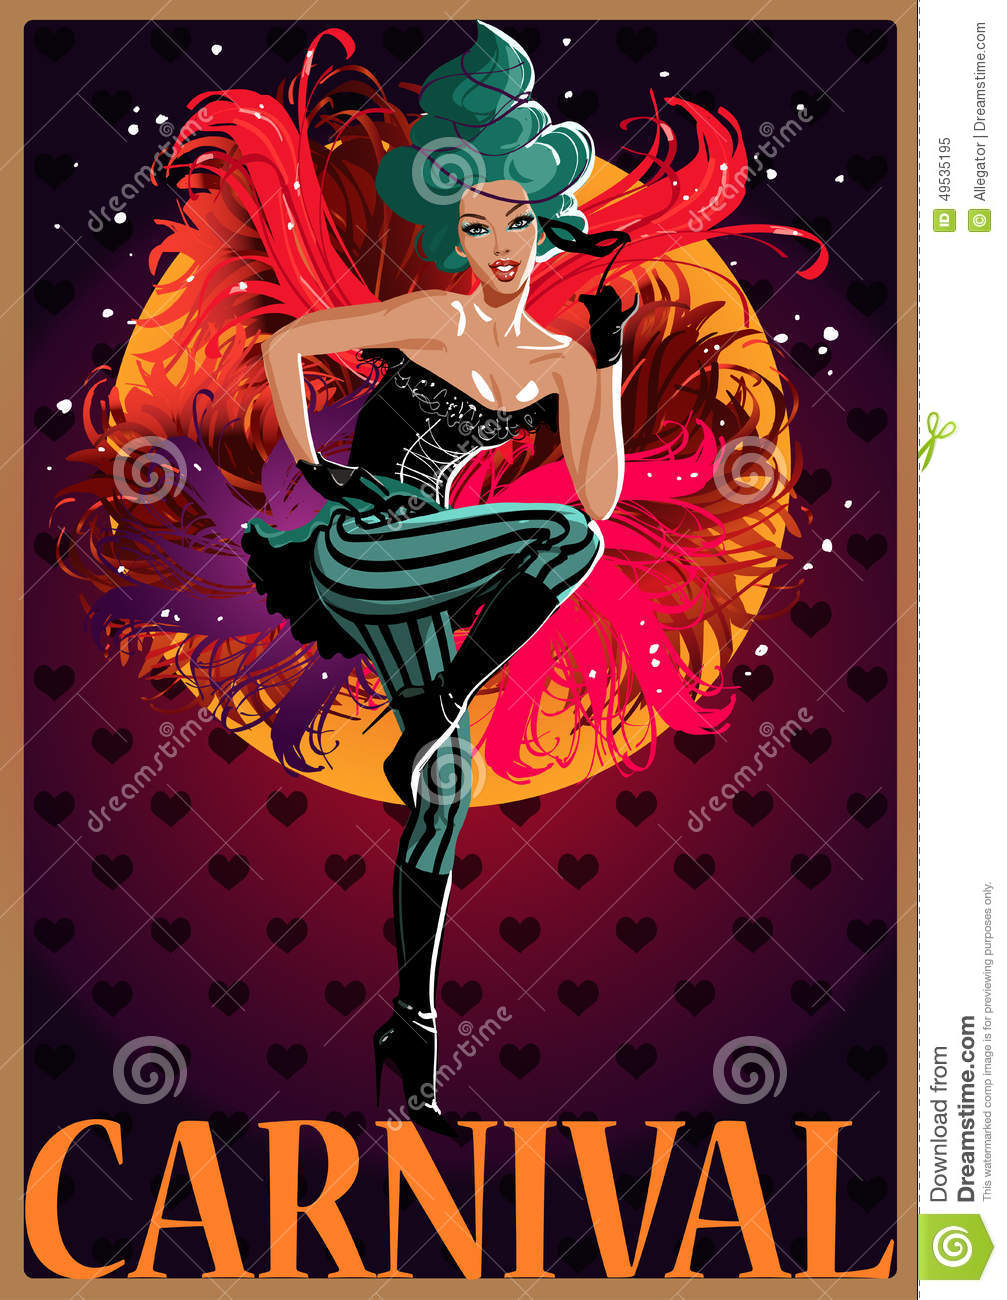 Vector Carnival Poster Stock Vector - Image: 49535195 X 23 Costume